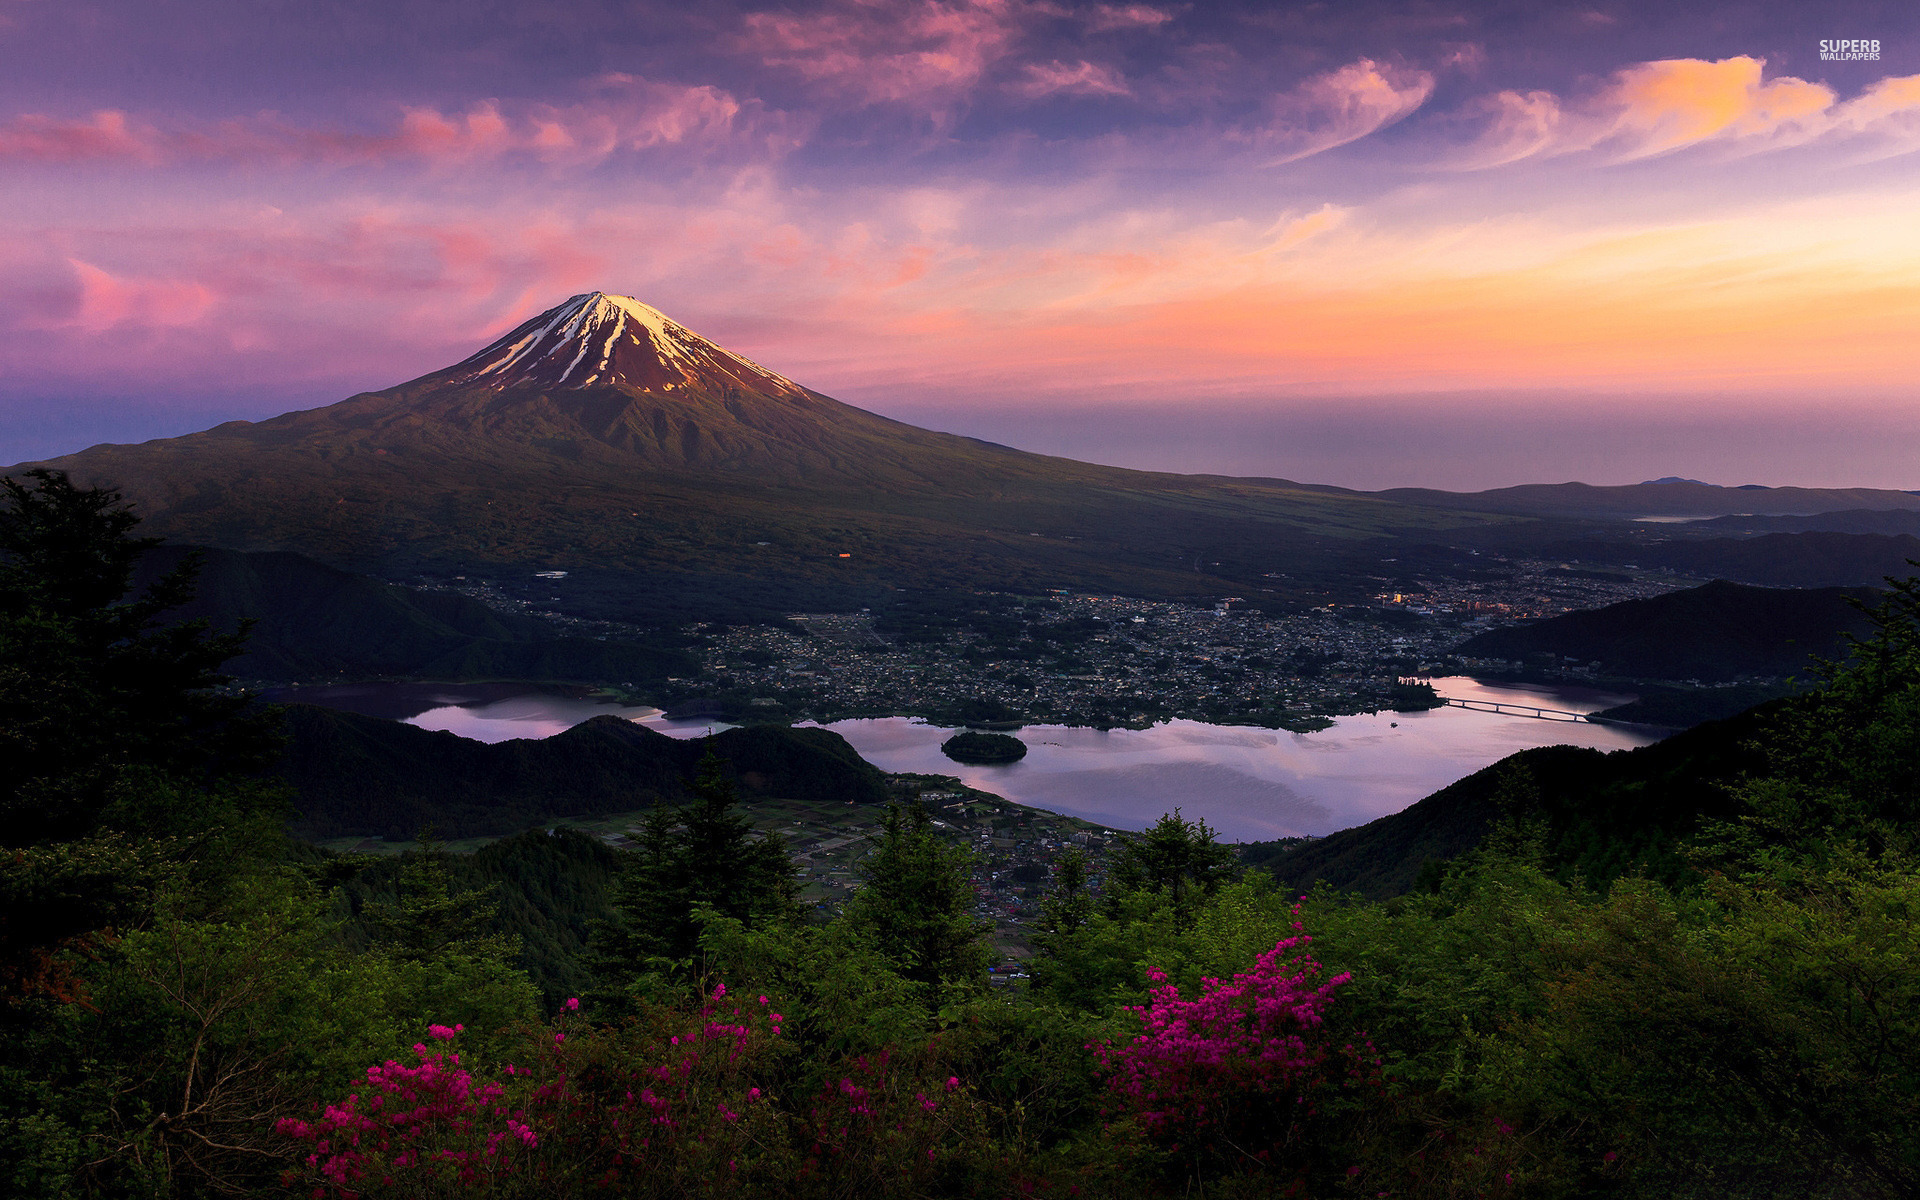 Mount Fuji Japan Asia Wallpapers Mount Fuji Japan Asia